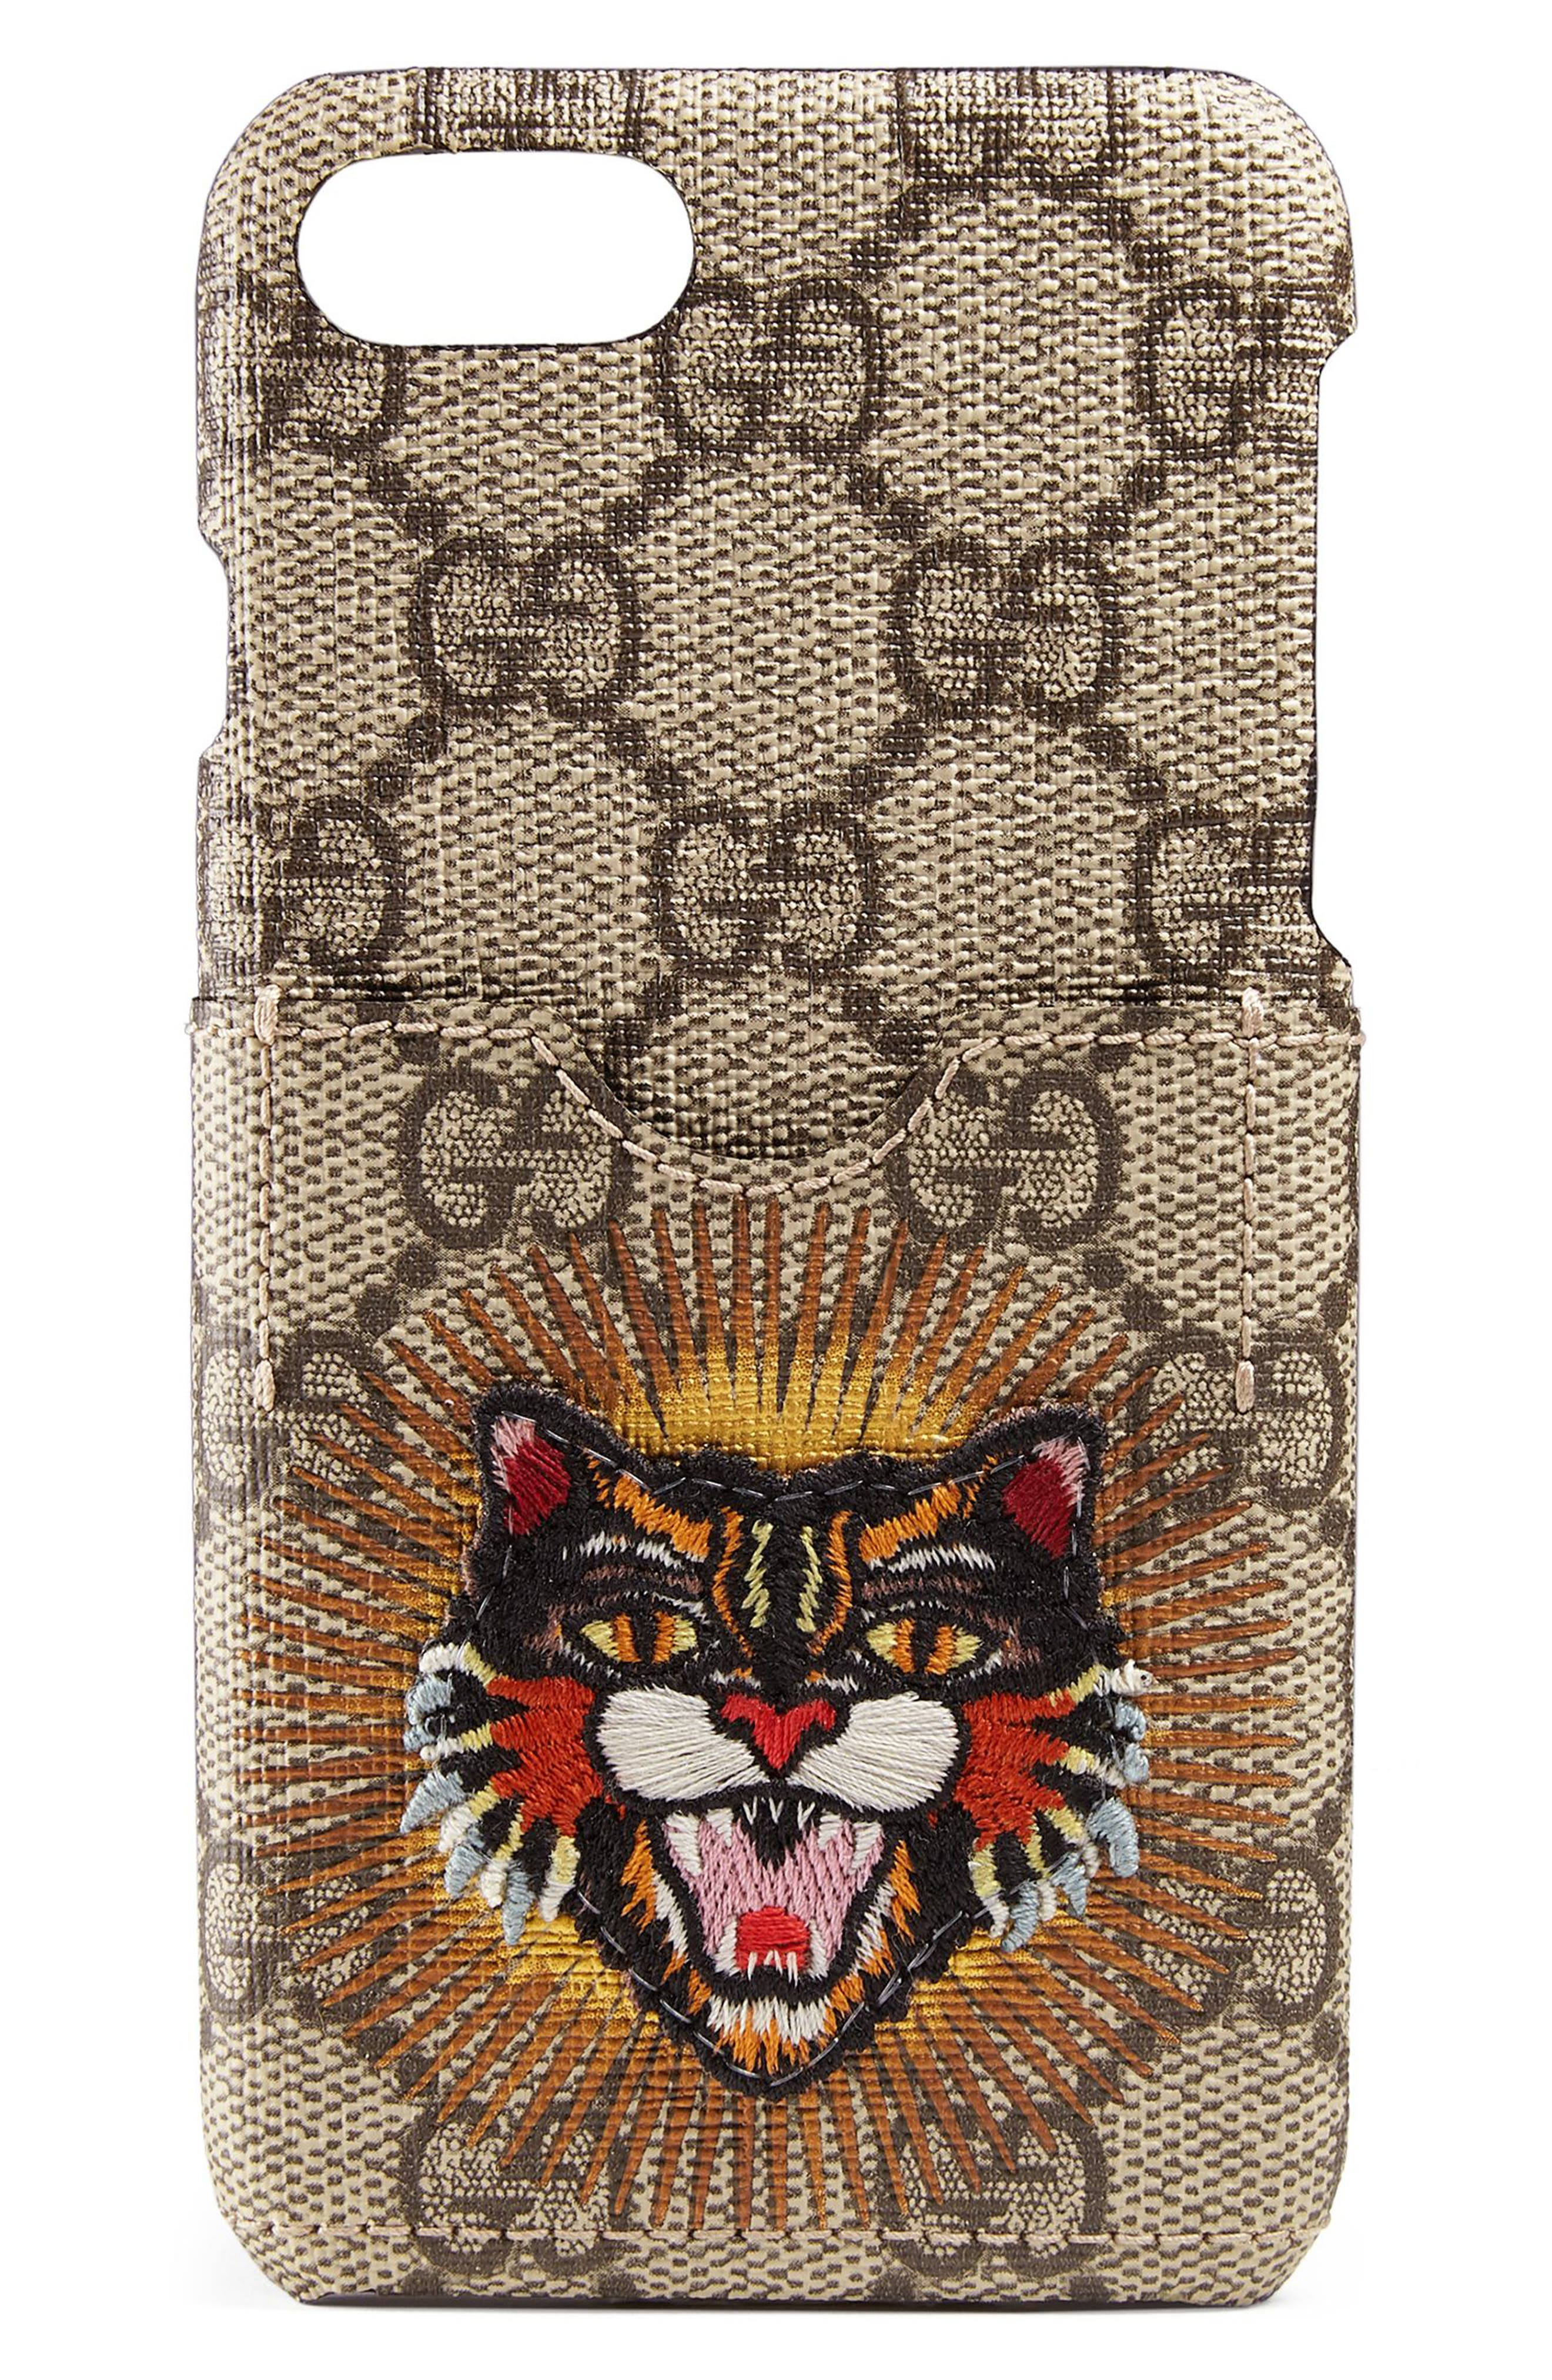 Main Image - Gucci Embroidered Angry Cat GG Supreme iPhone 7 Case